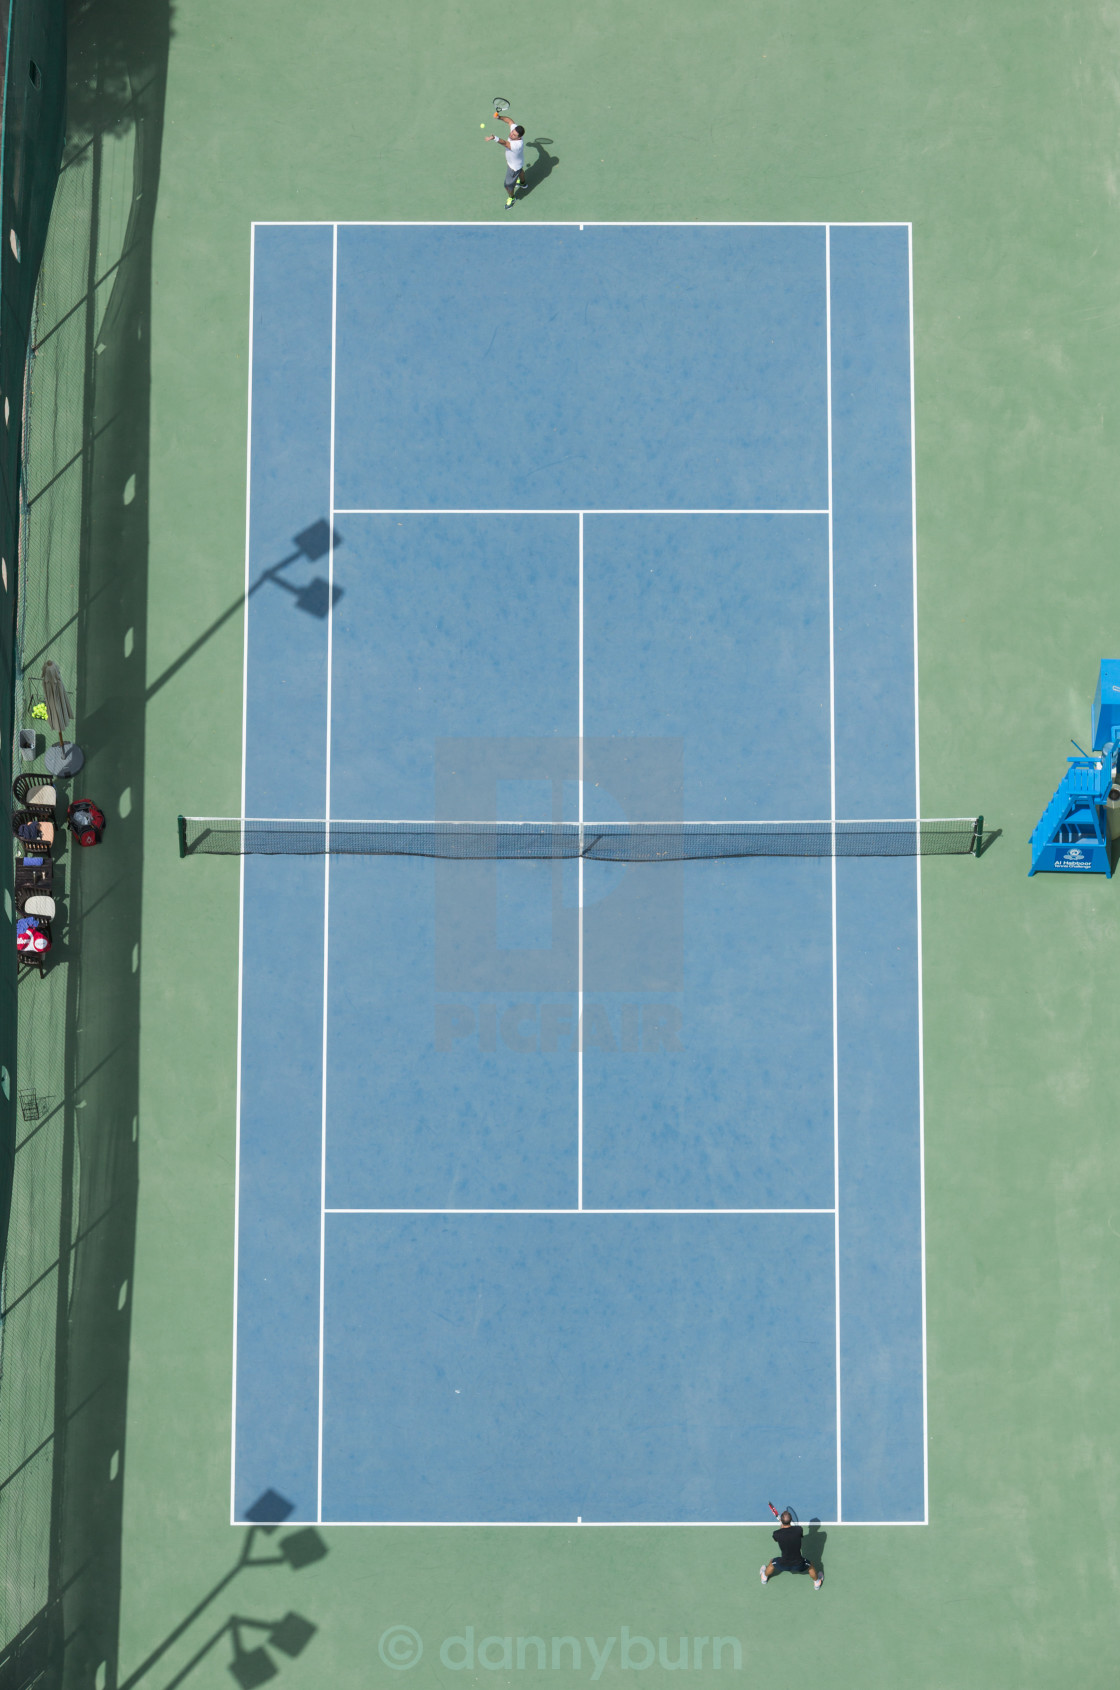 """ariel view of a tennis court birds eye view"" stock image"